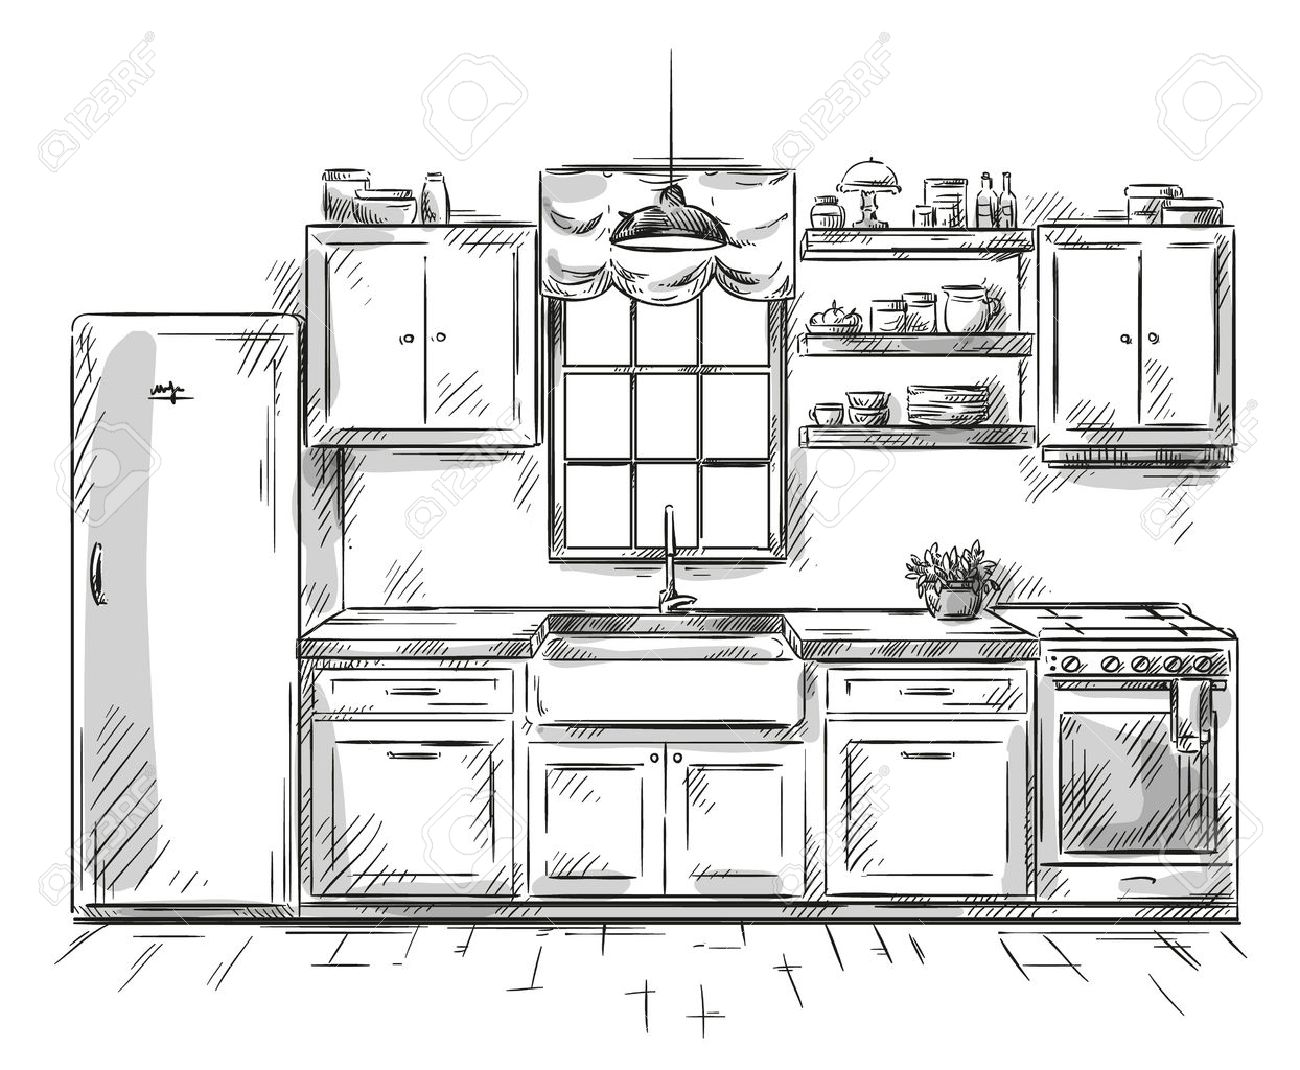 Kitchen Interior Drawing Vector Illustration Royalty Free Cliparts